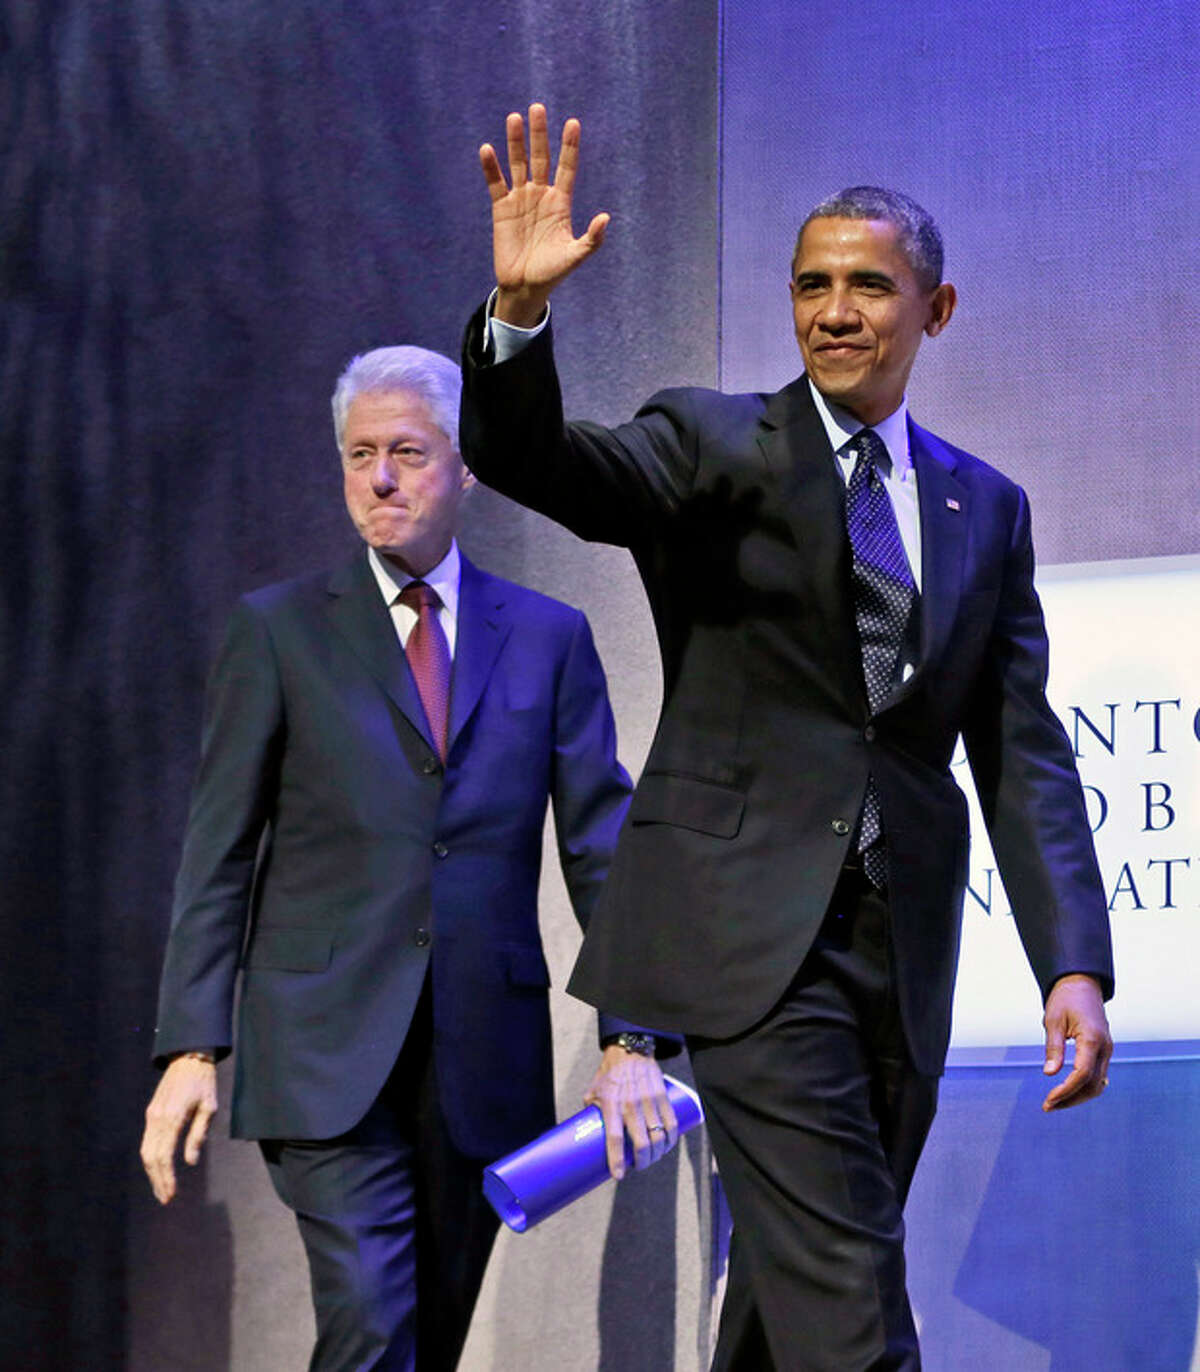 President Barack Obama, right, walks on stage with former President Bill Clinton, left, before speaking at the Clinton Global Initiative in New York, Tuesday, Sept. 24, 2013. (AP Photo/Pablo Martinez Monsivais)